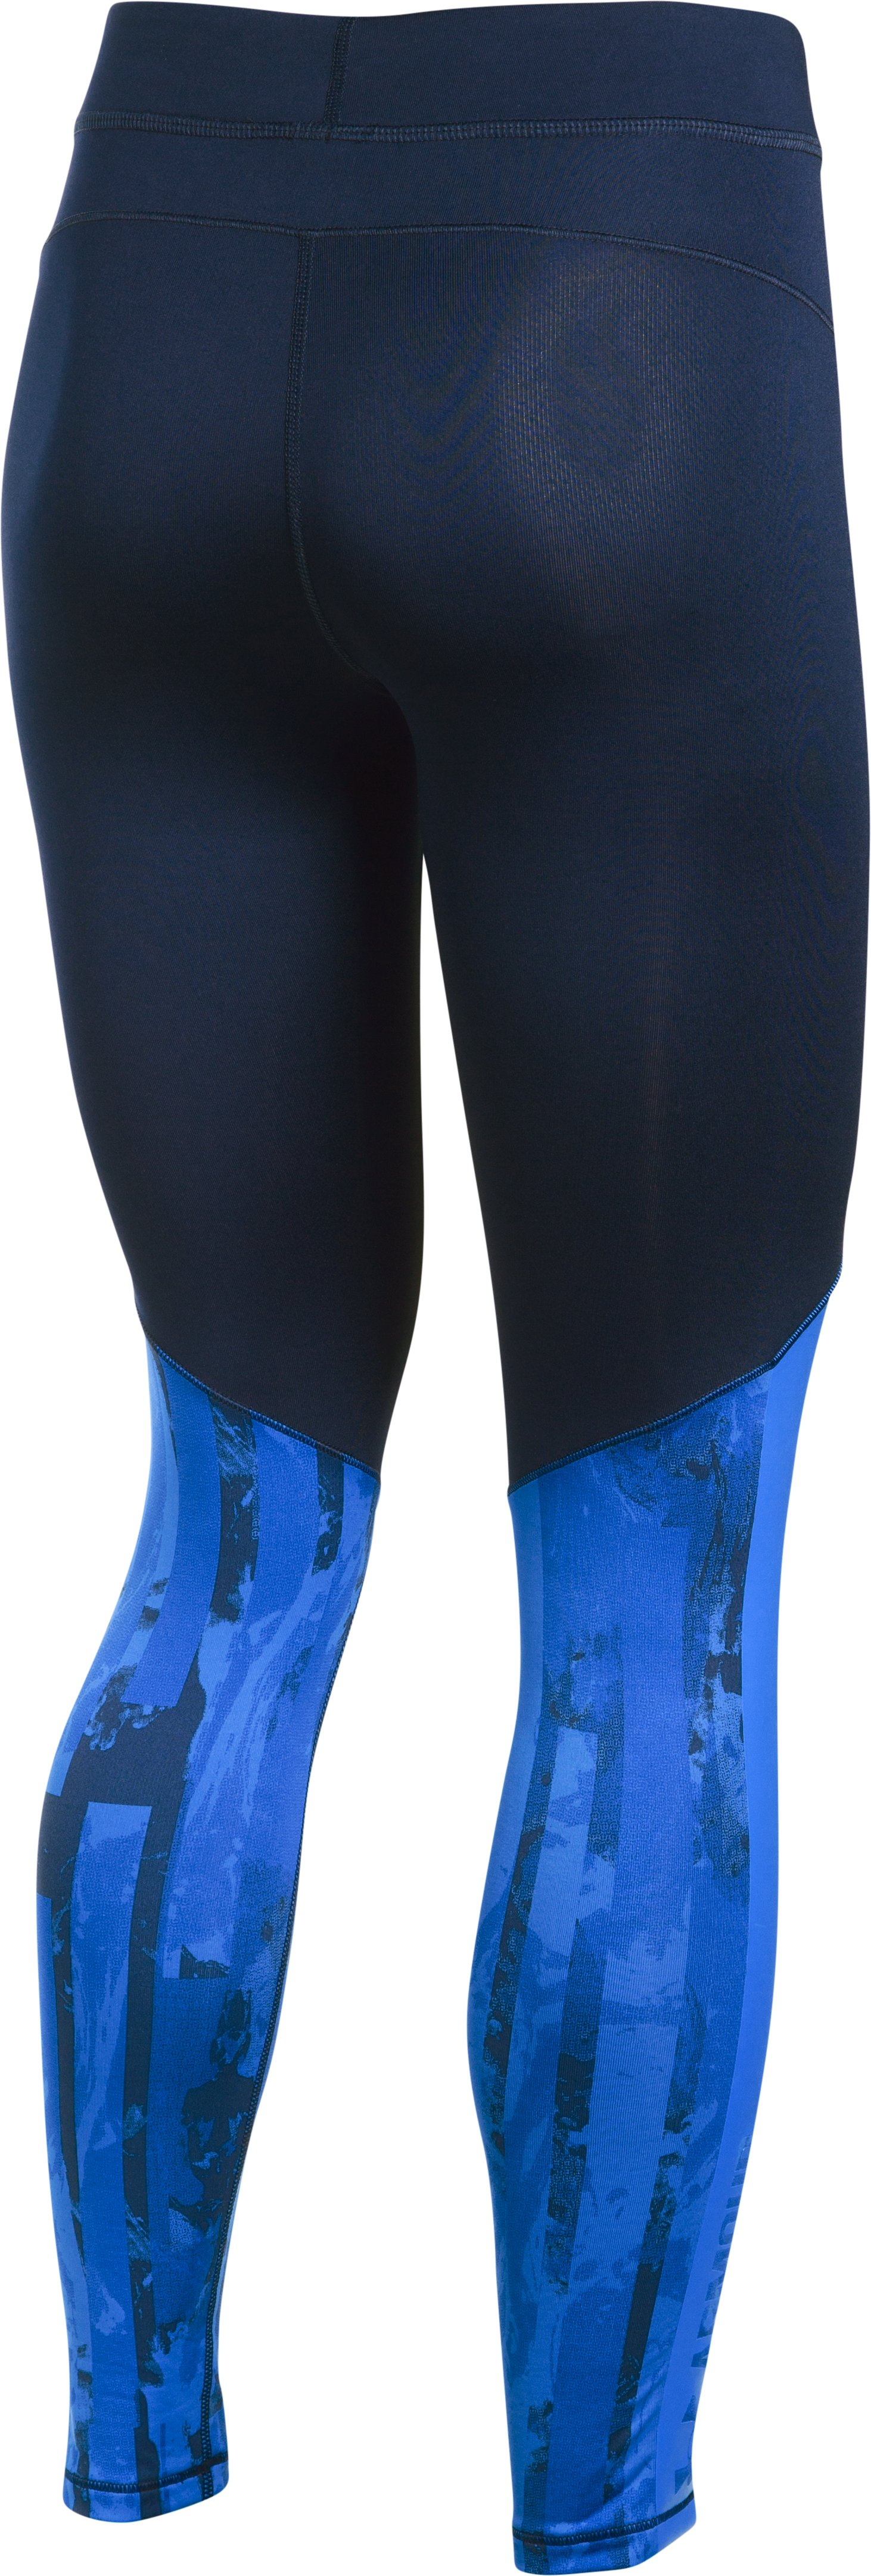 Women's ColdGear® Armour Printed Leggings, Midnight Navy,